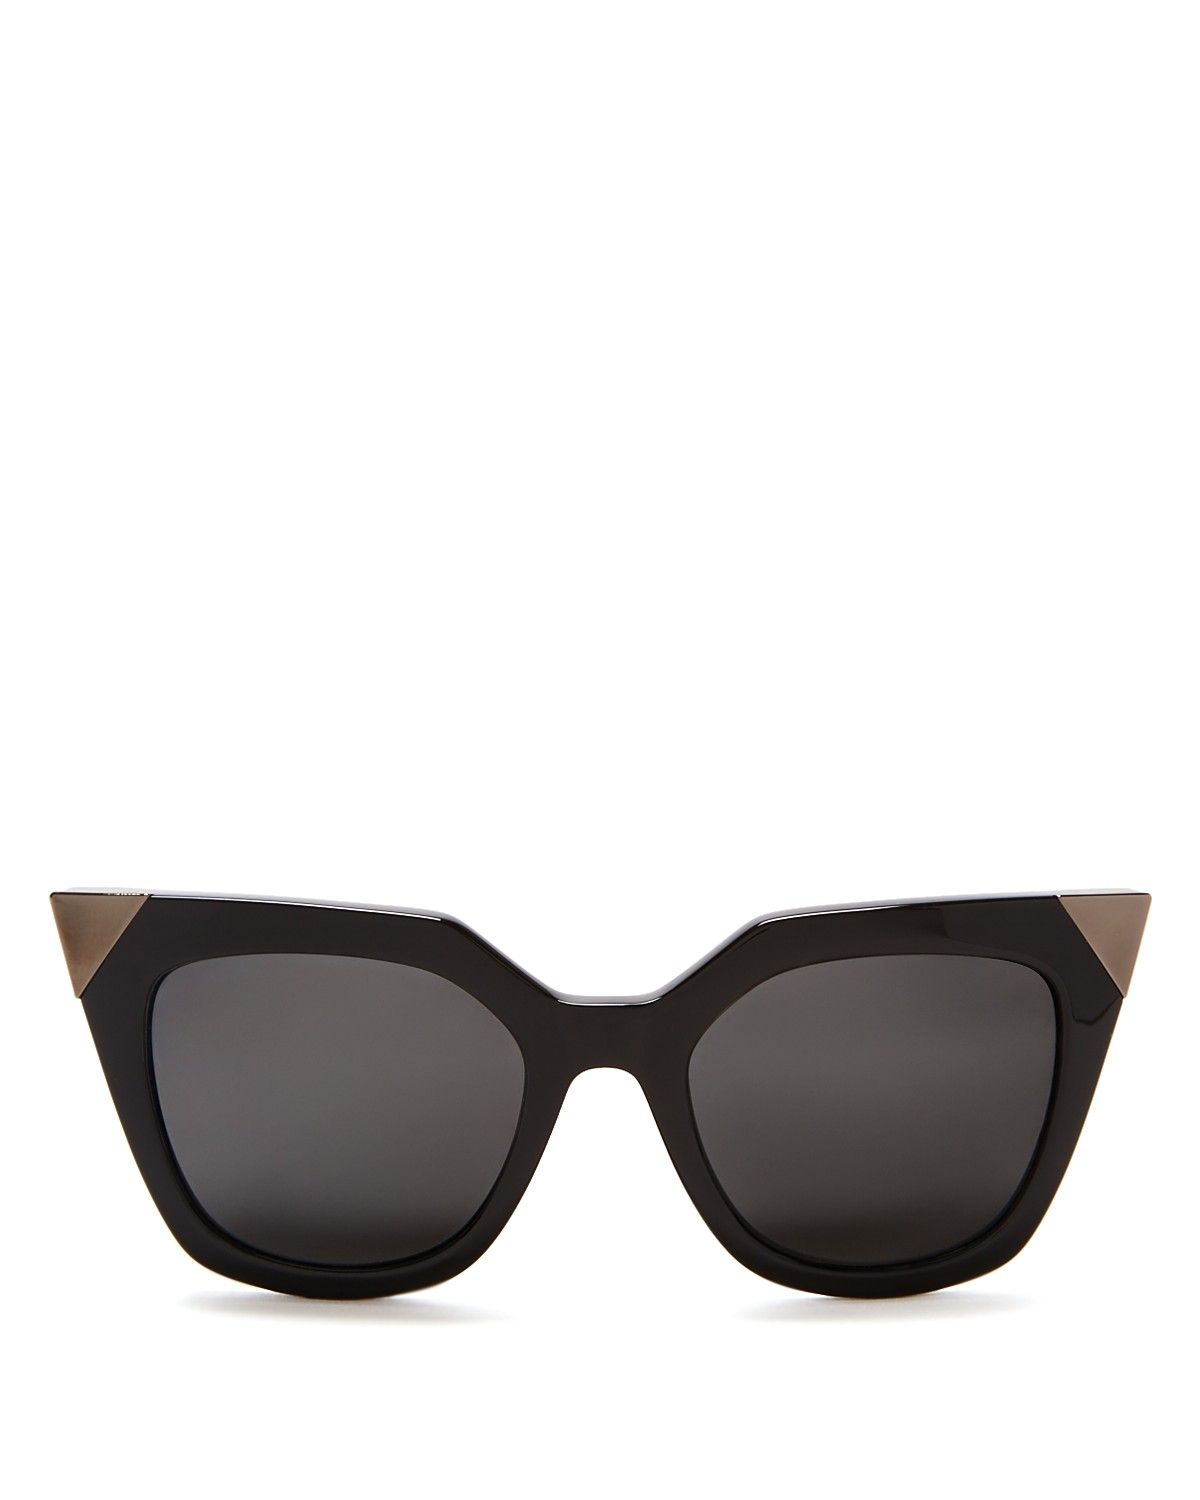 f41cb238a Fendi Mirrored Geometric Sunglasses, 52mm | Made in Italy | 100% UV  protection | Zig-zag sides and metal tips at frame corners; logo at sides |  52 mm lens ...